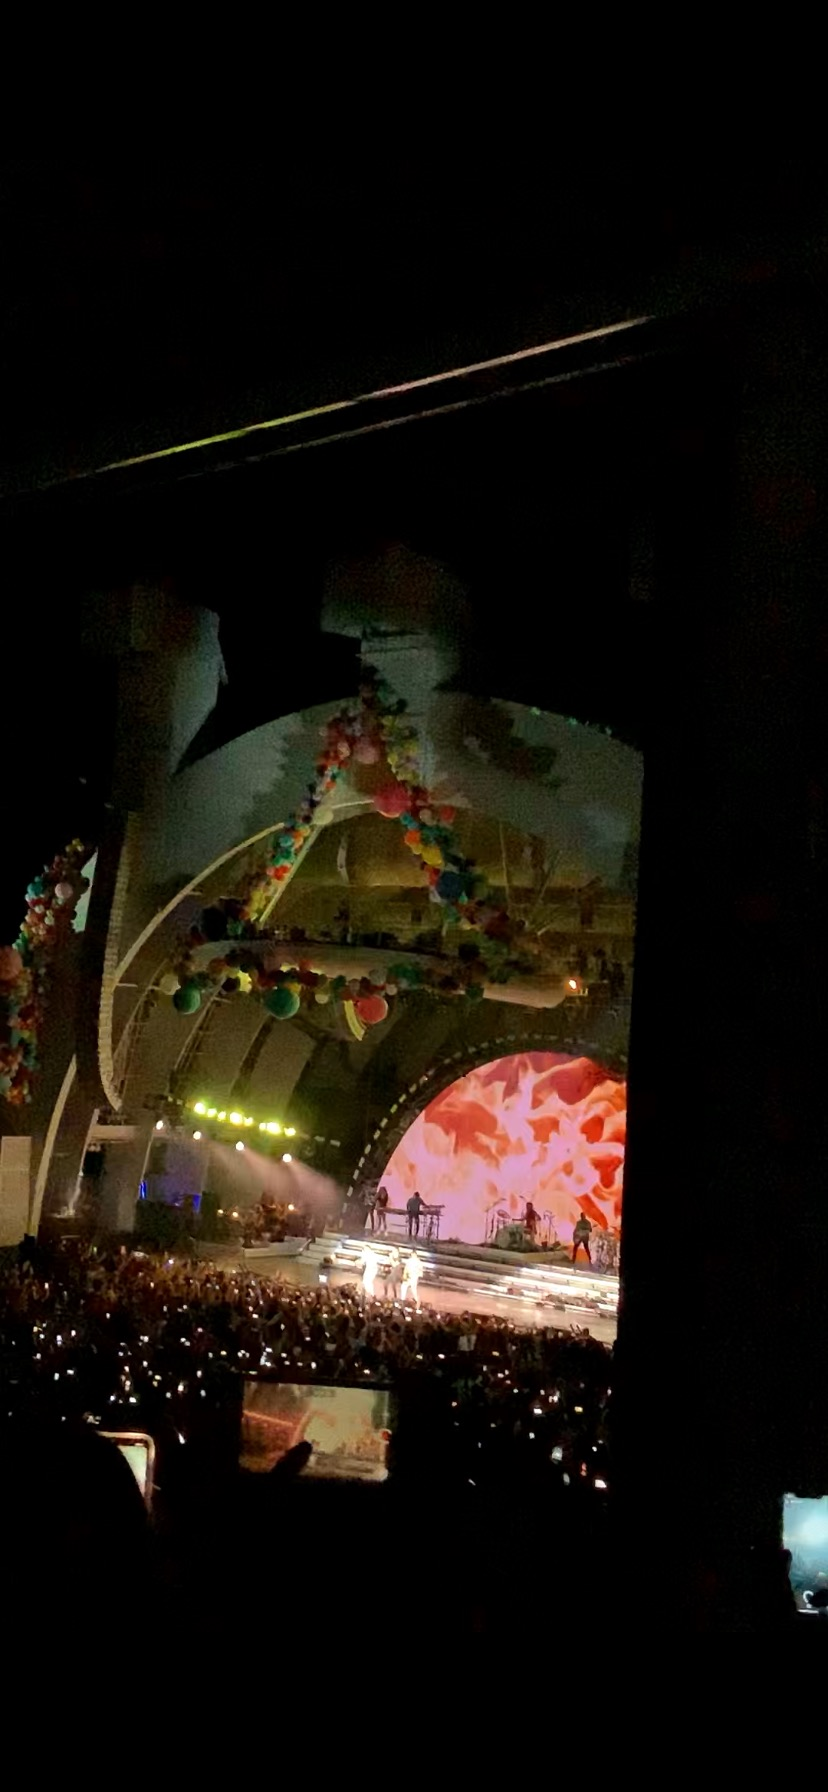 Hollywood Bowl Section F3 Row 4 Seat 30 and 32